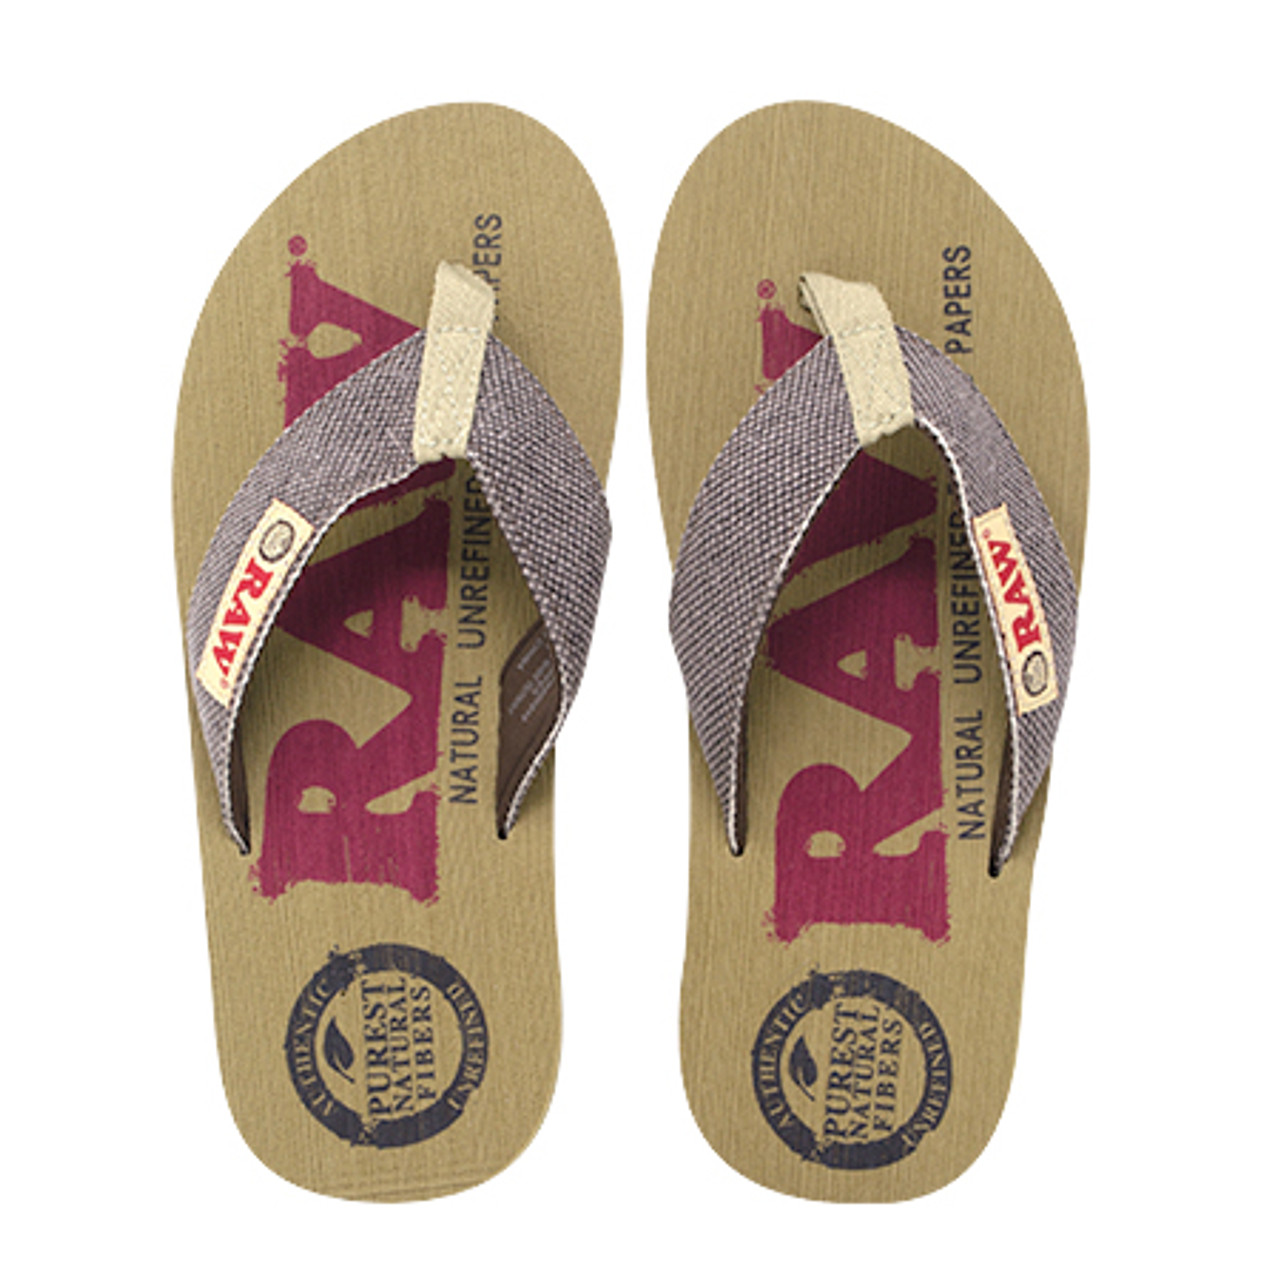 RAW x Rolling Paper Thong Slippers